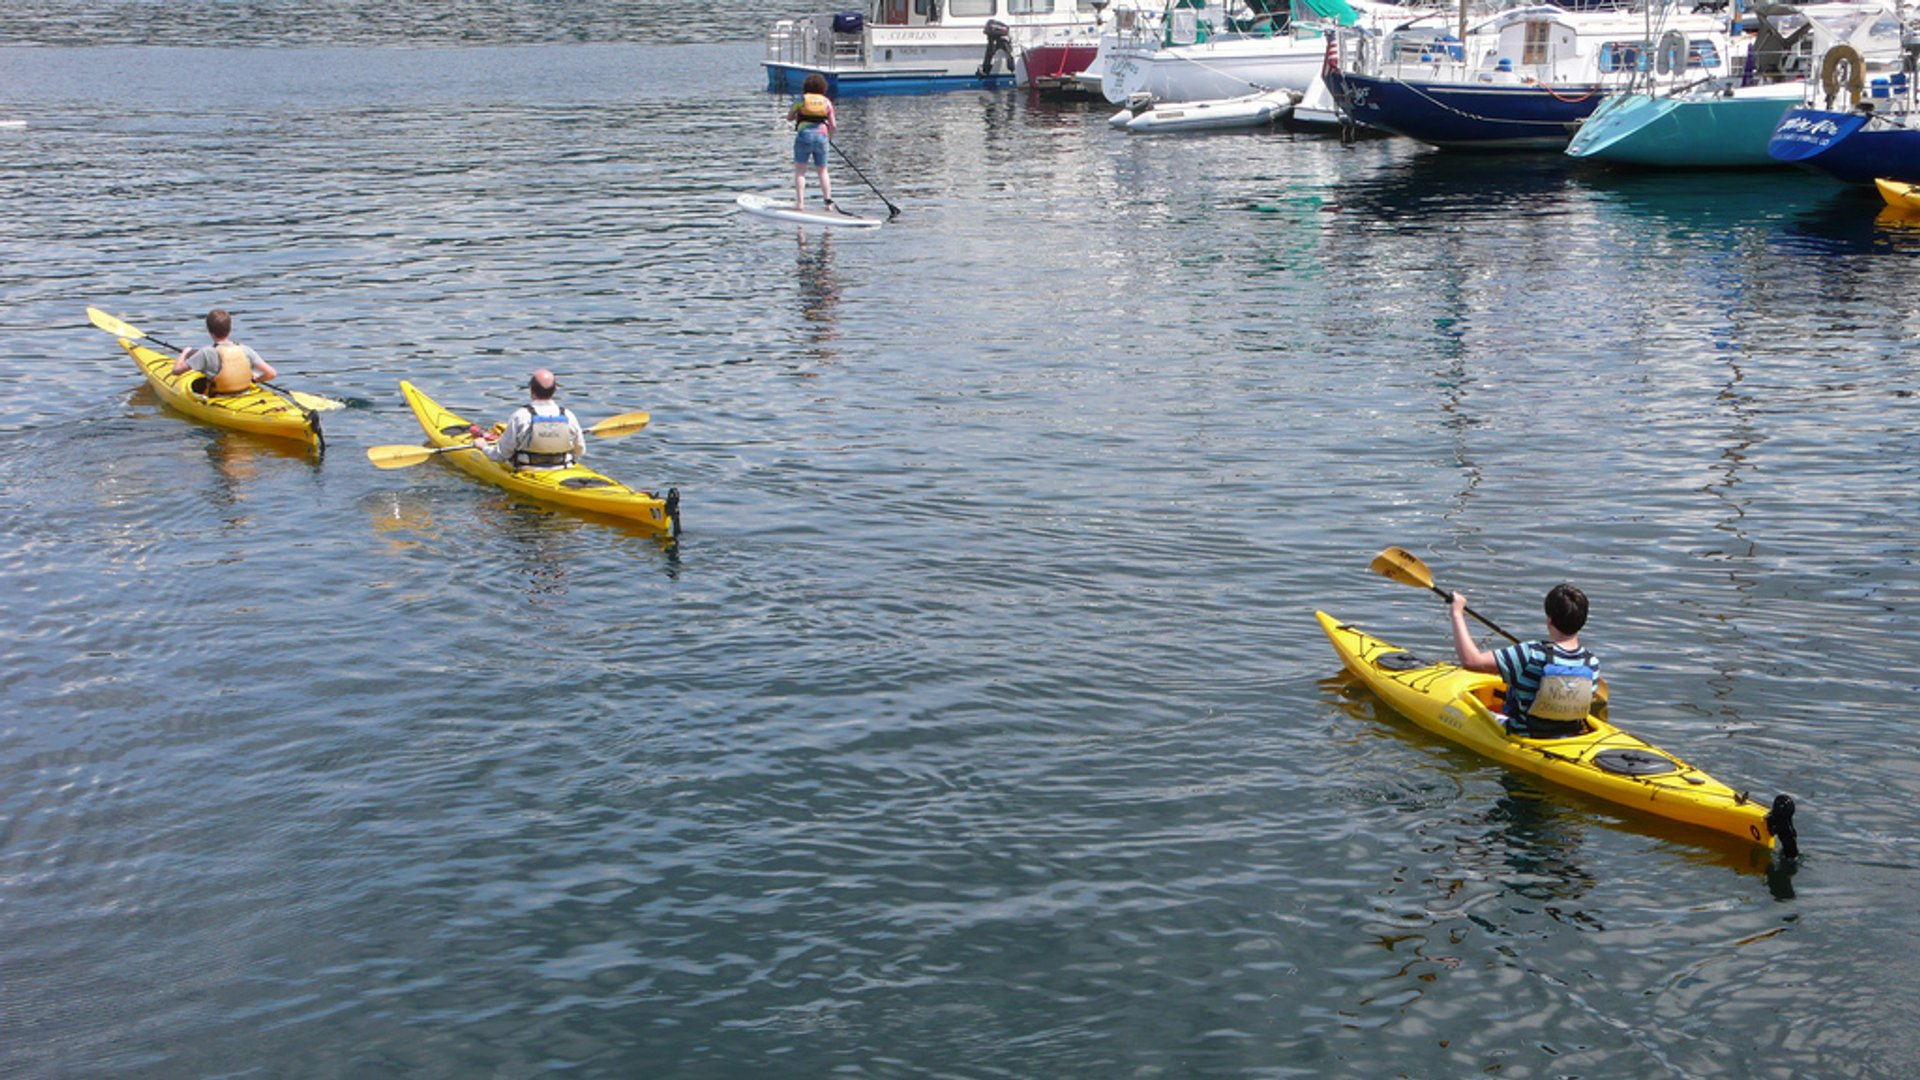 Kayaking on Lake Union from the Northwest Outdoor Center 2019